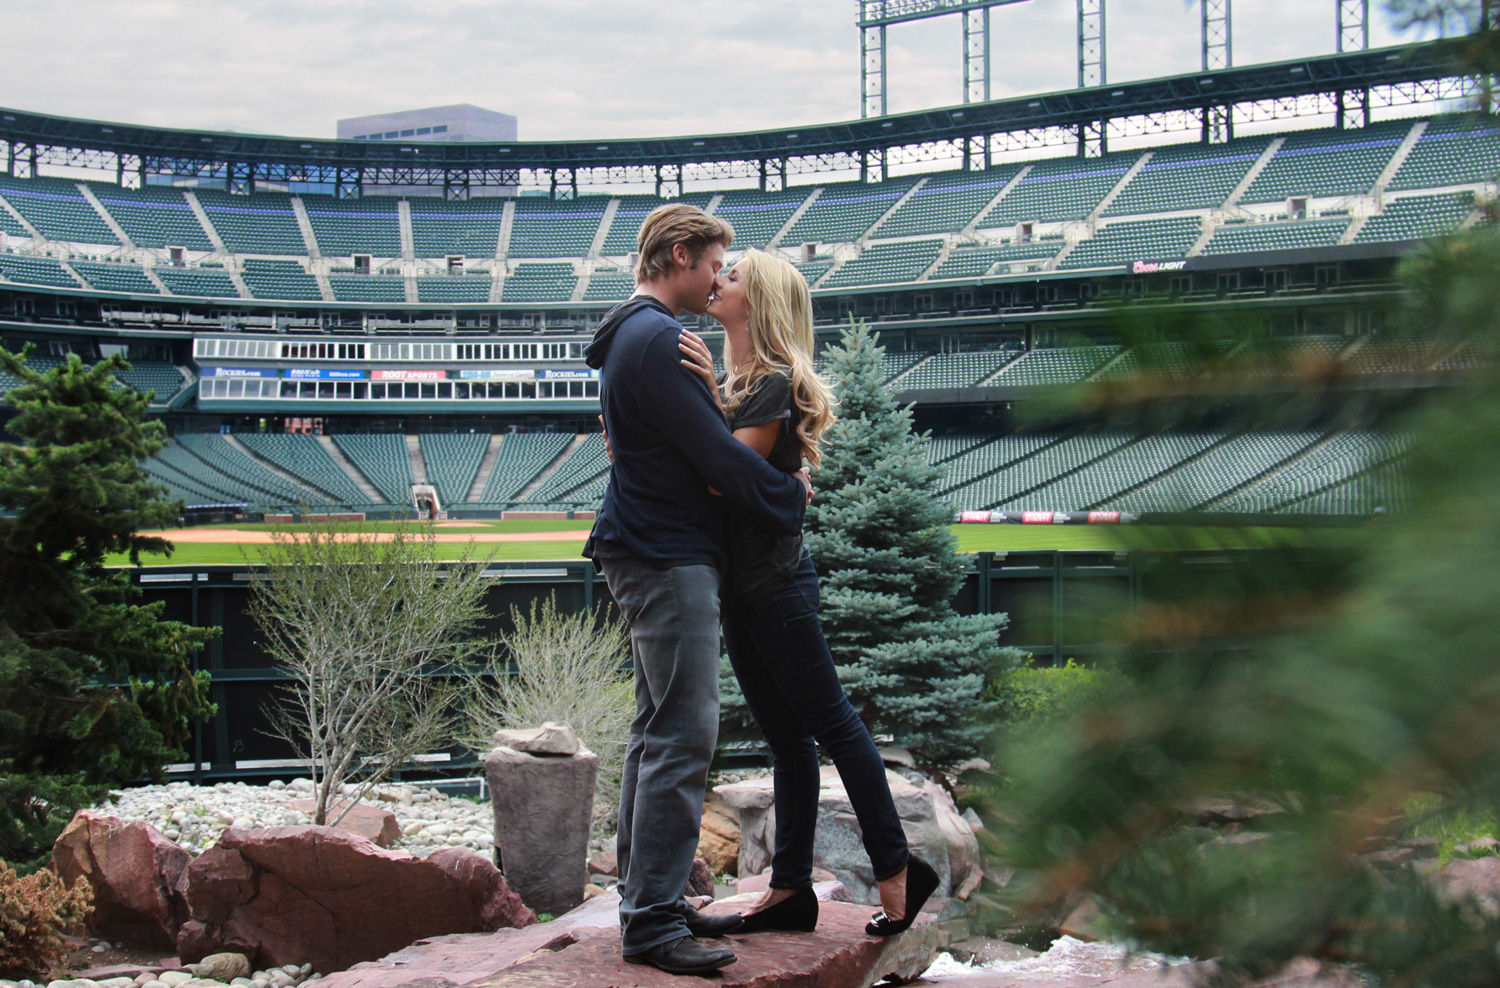 Josh Rutledge and Laura Rutledge - Coors Field Engagement Session